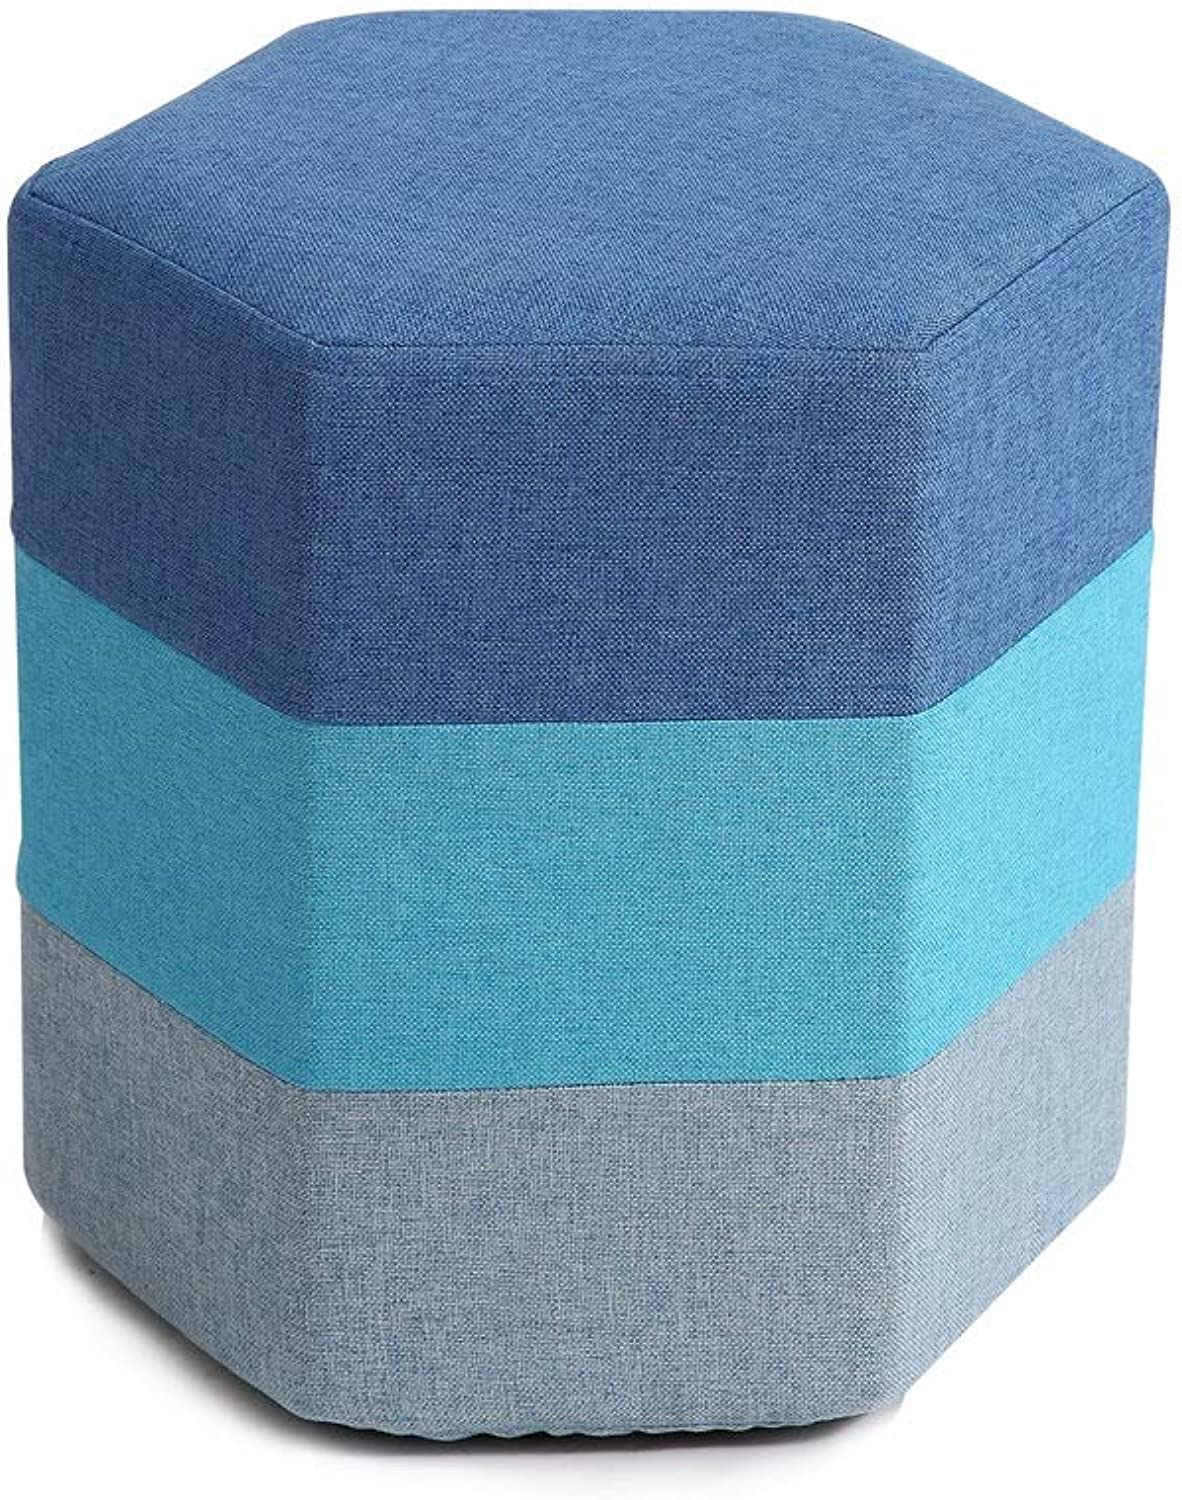 LifeX Creative Rainbow Sofa Stool 3 Floor Mixed colors shoes Bench Fabric Seat Pier Coffee Table Stool Adult Footstool Washable Hexagonal Dining Stool Kids Bed End Stool (color   bluee)